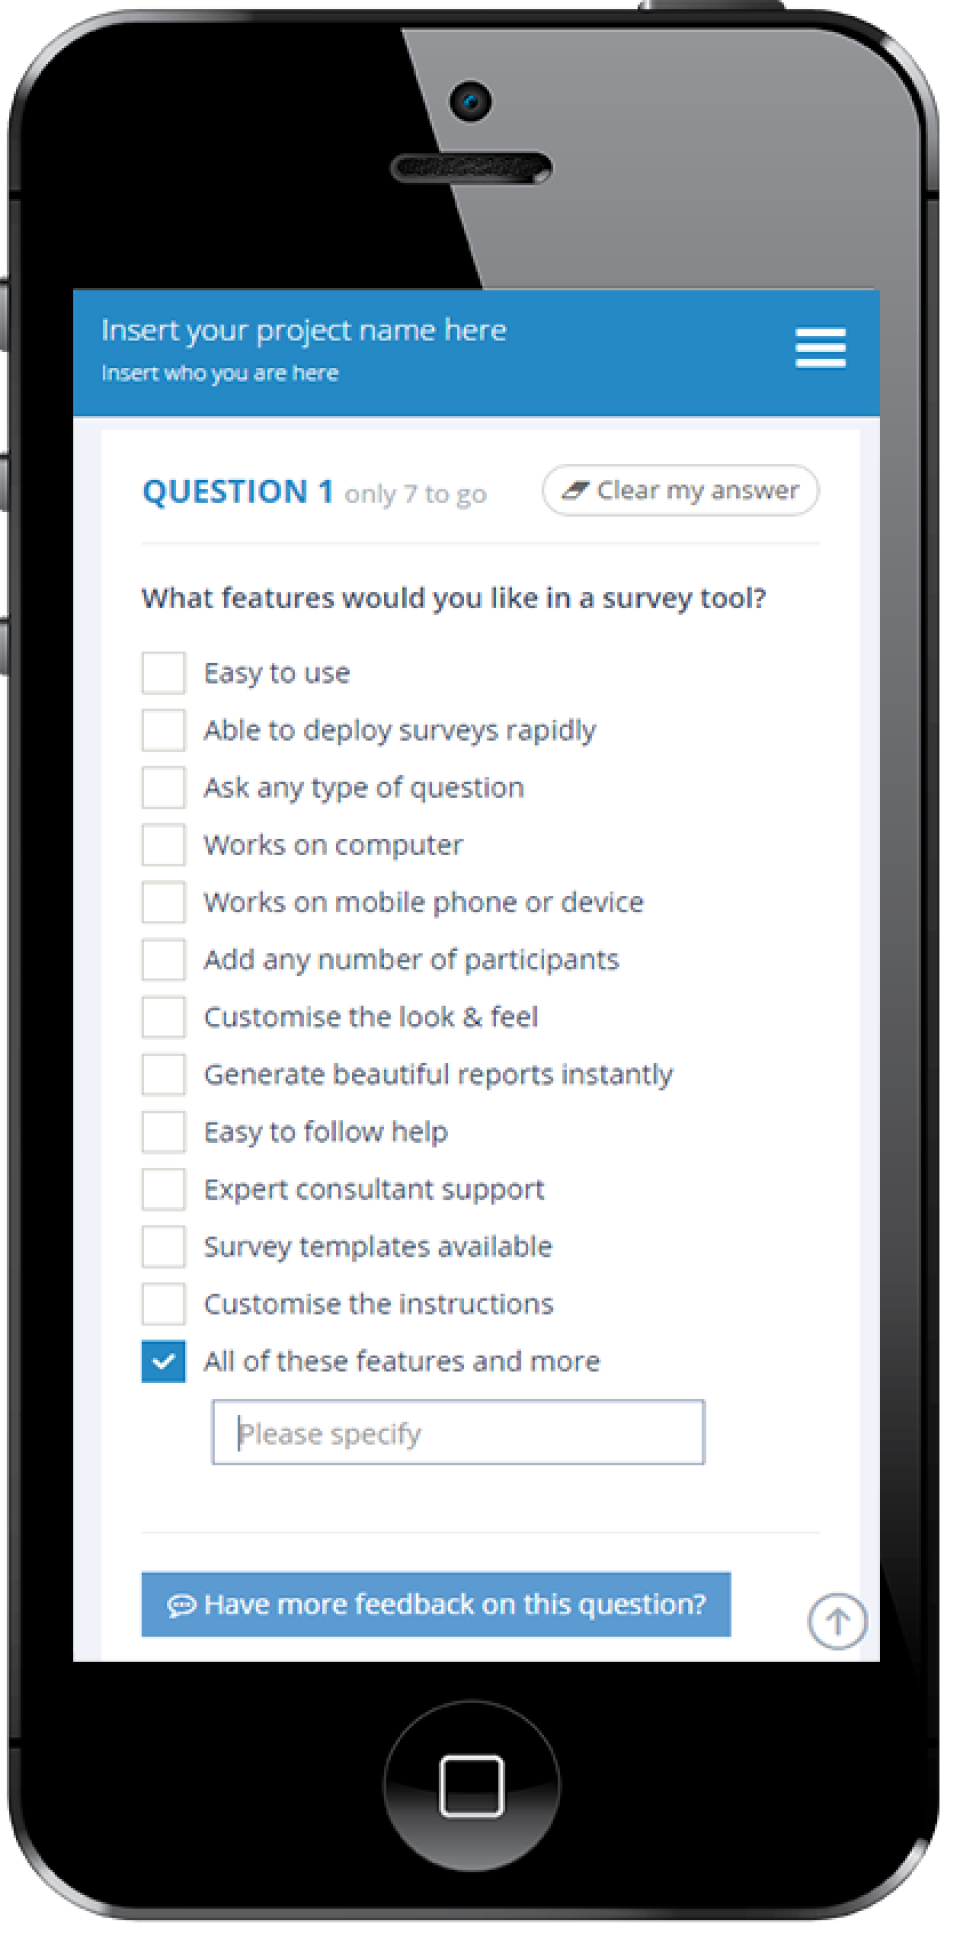 Users can create customized surveys